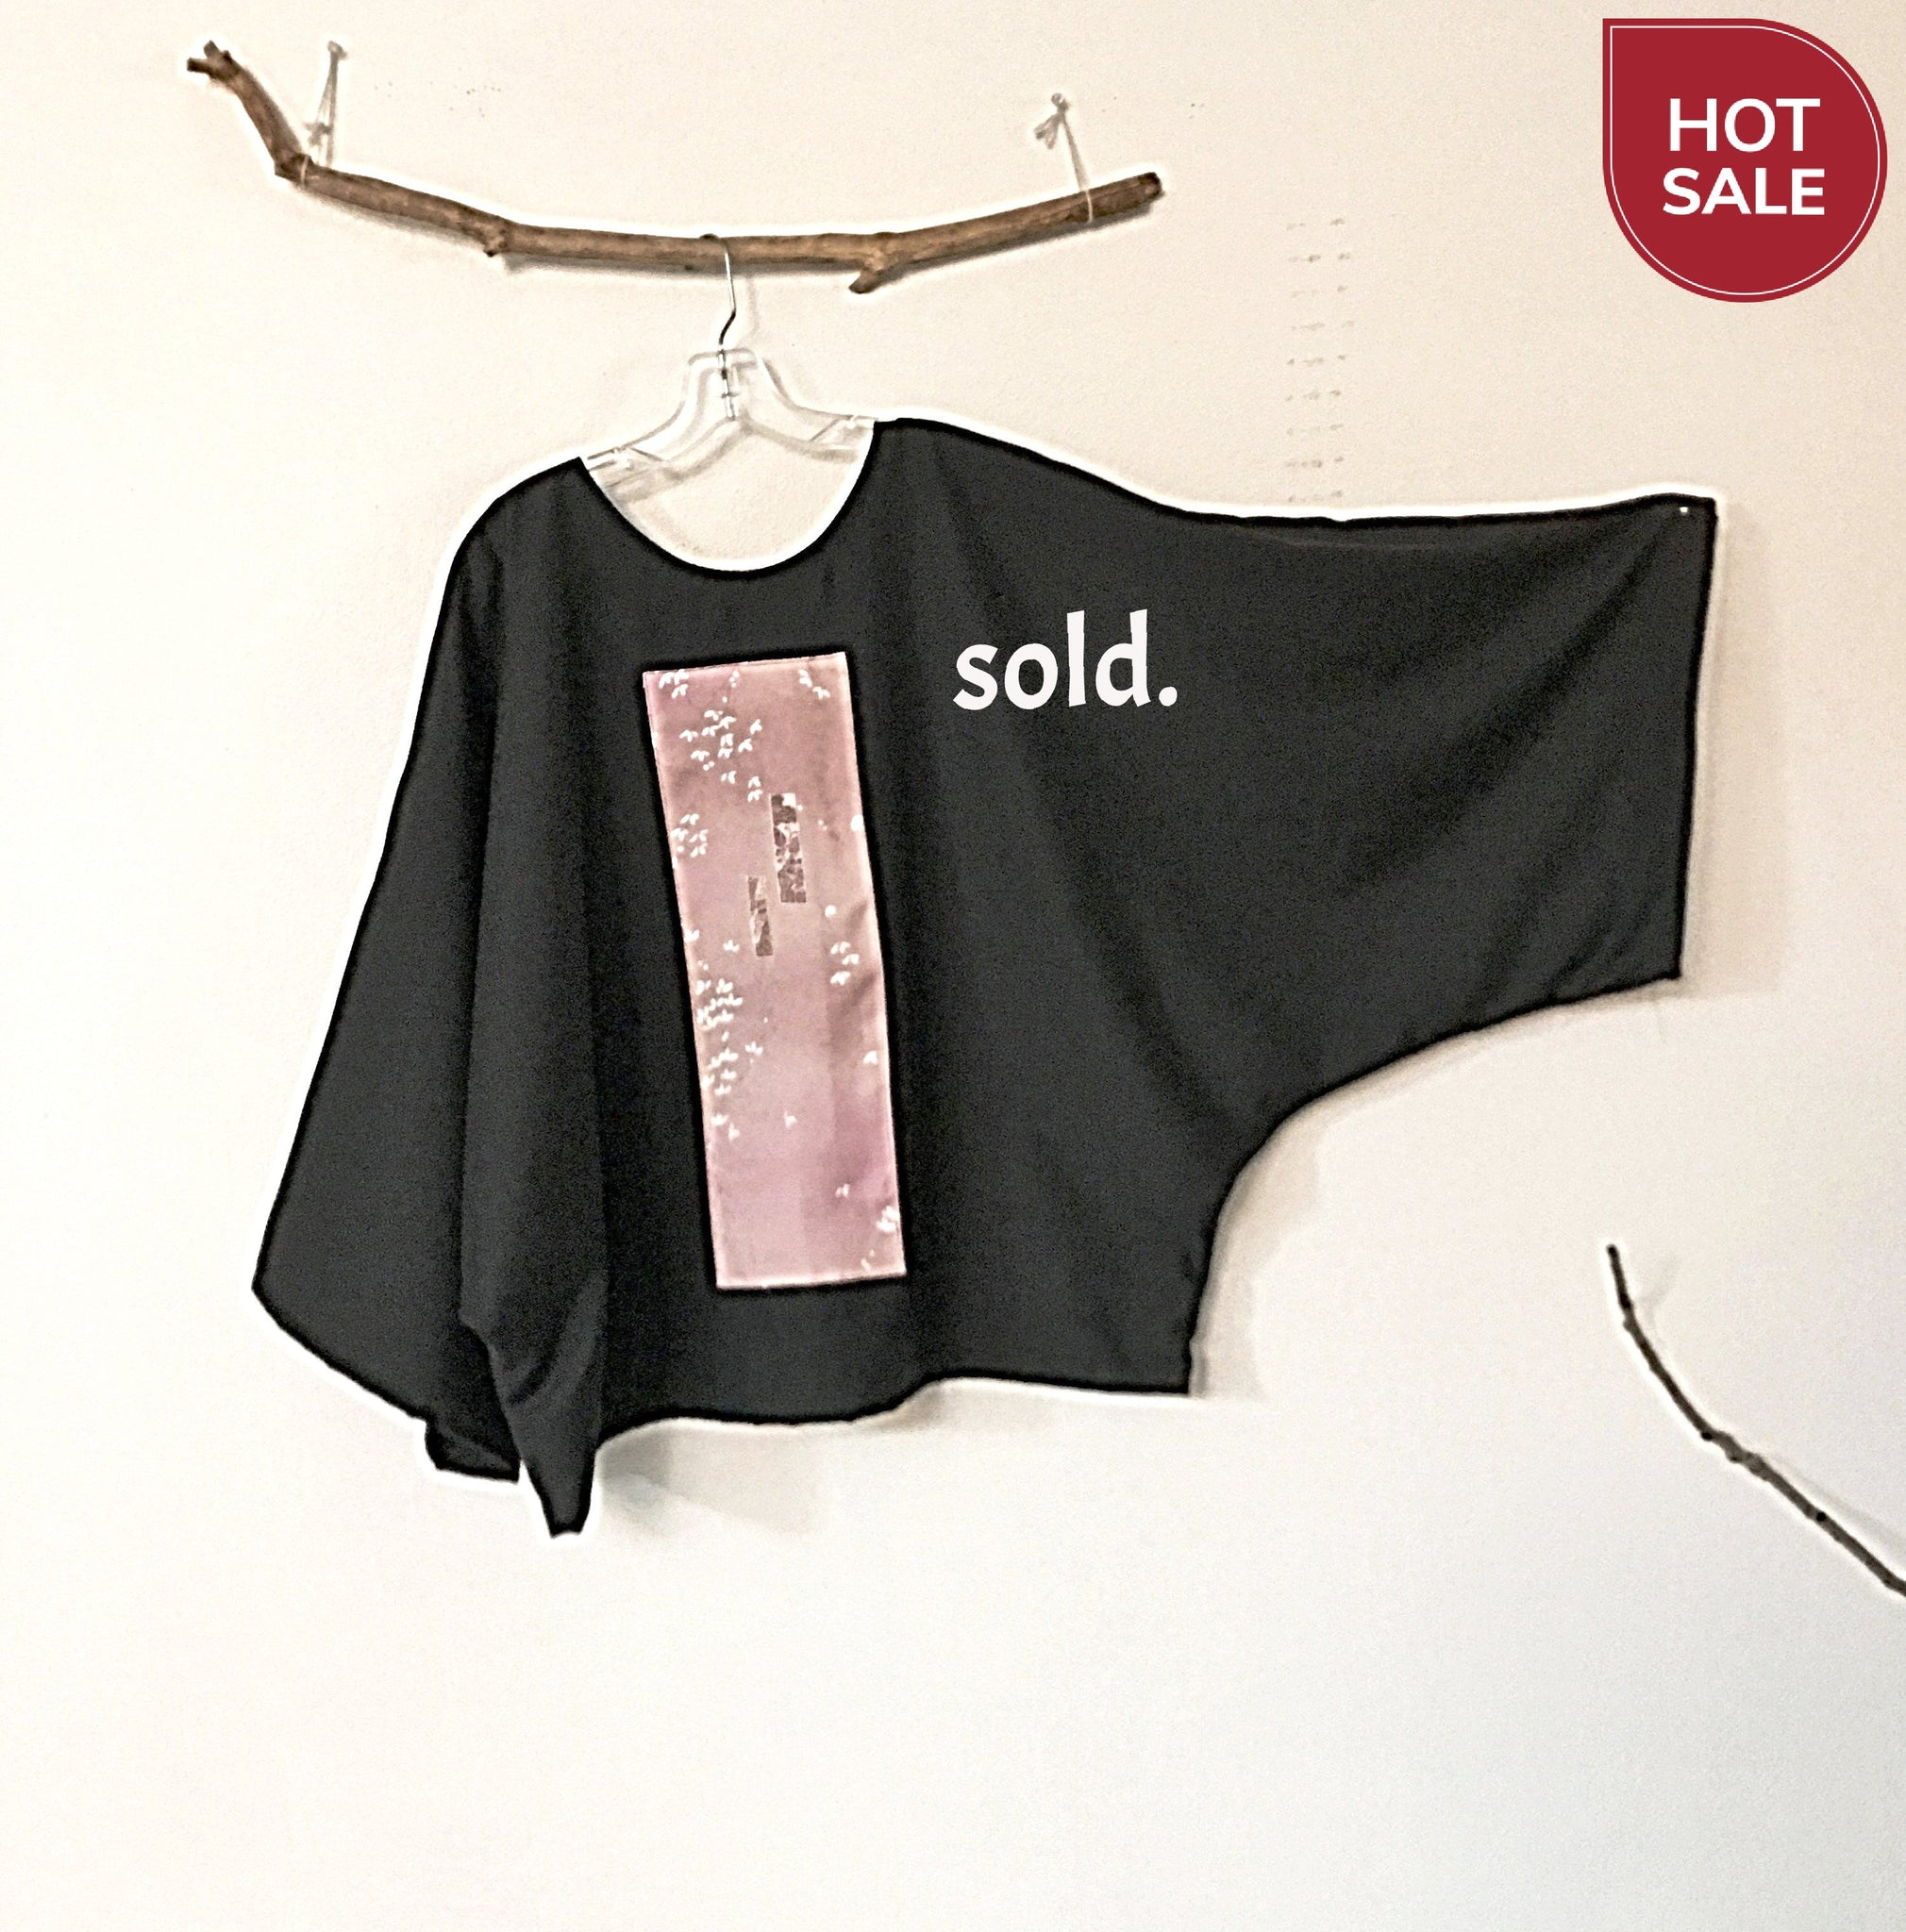 Sold / Oversized black dobbie wool top with pink floral kimono silk panel - ready to wear - linen clothing by anny